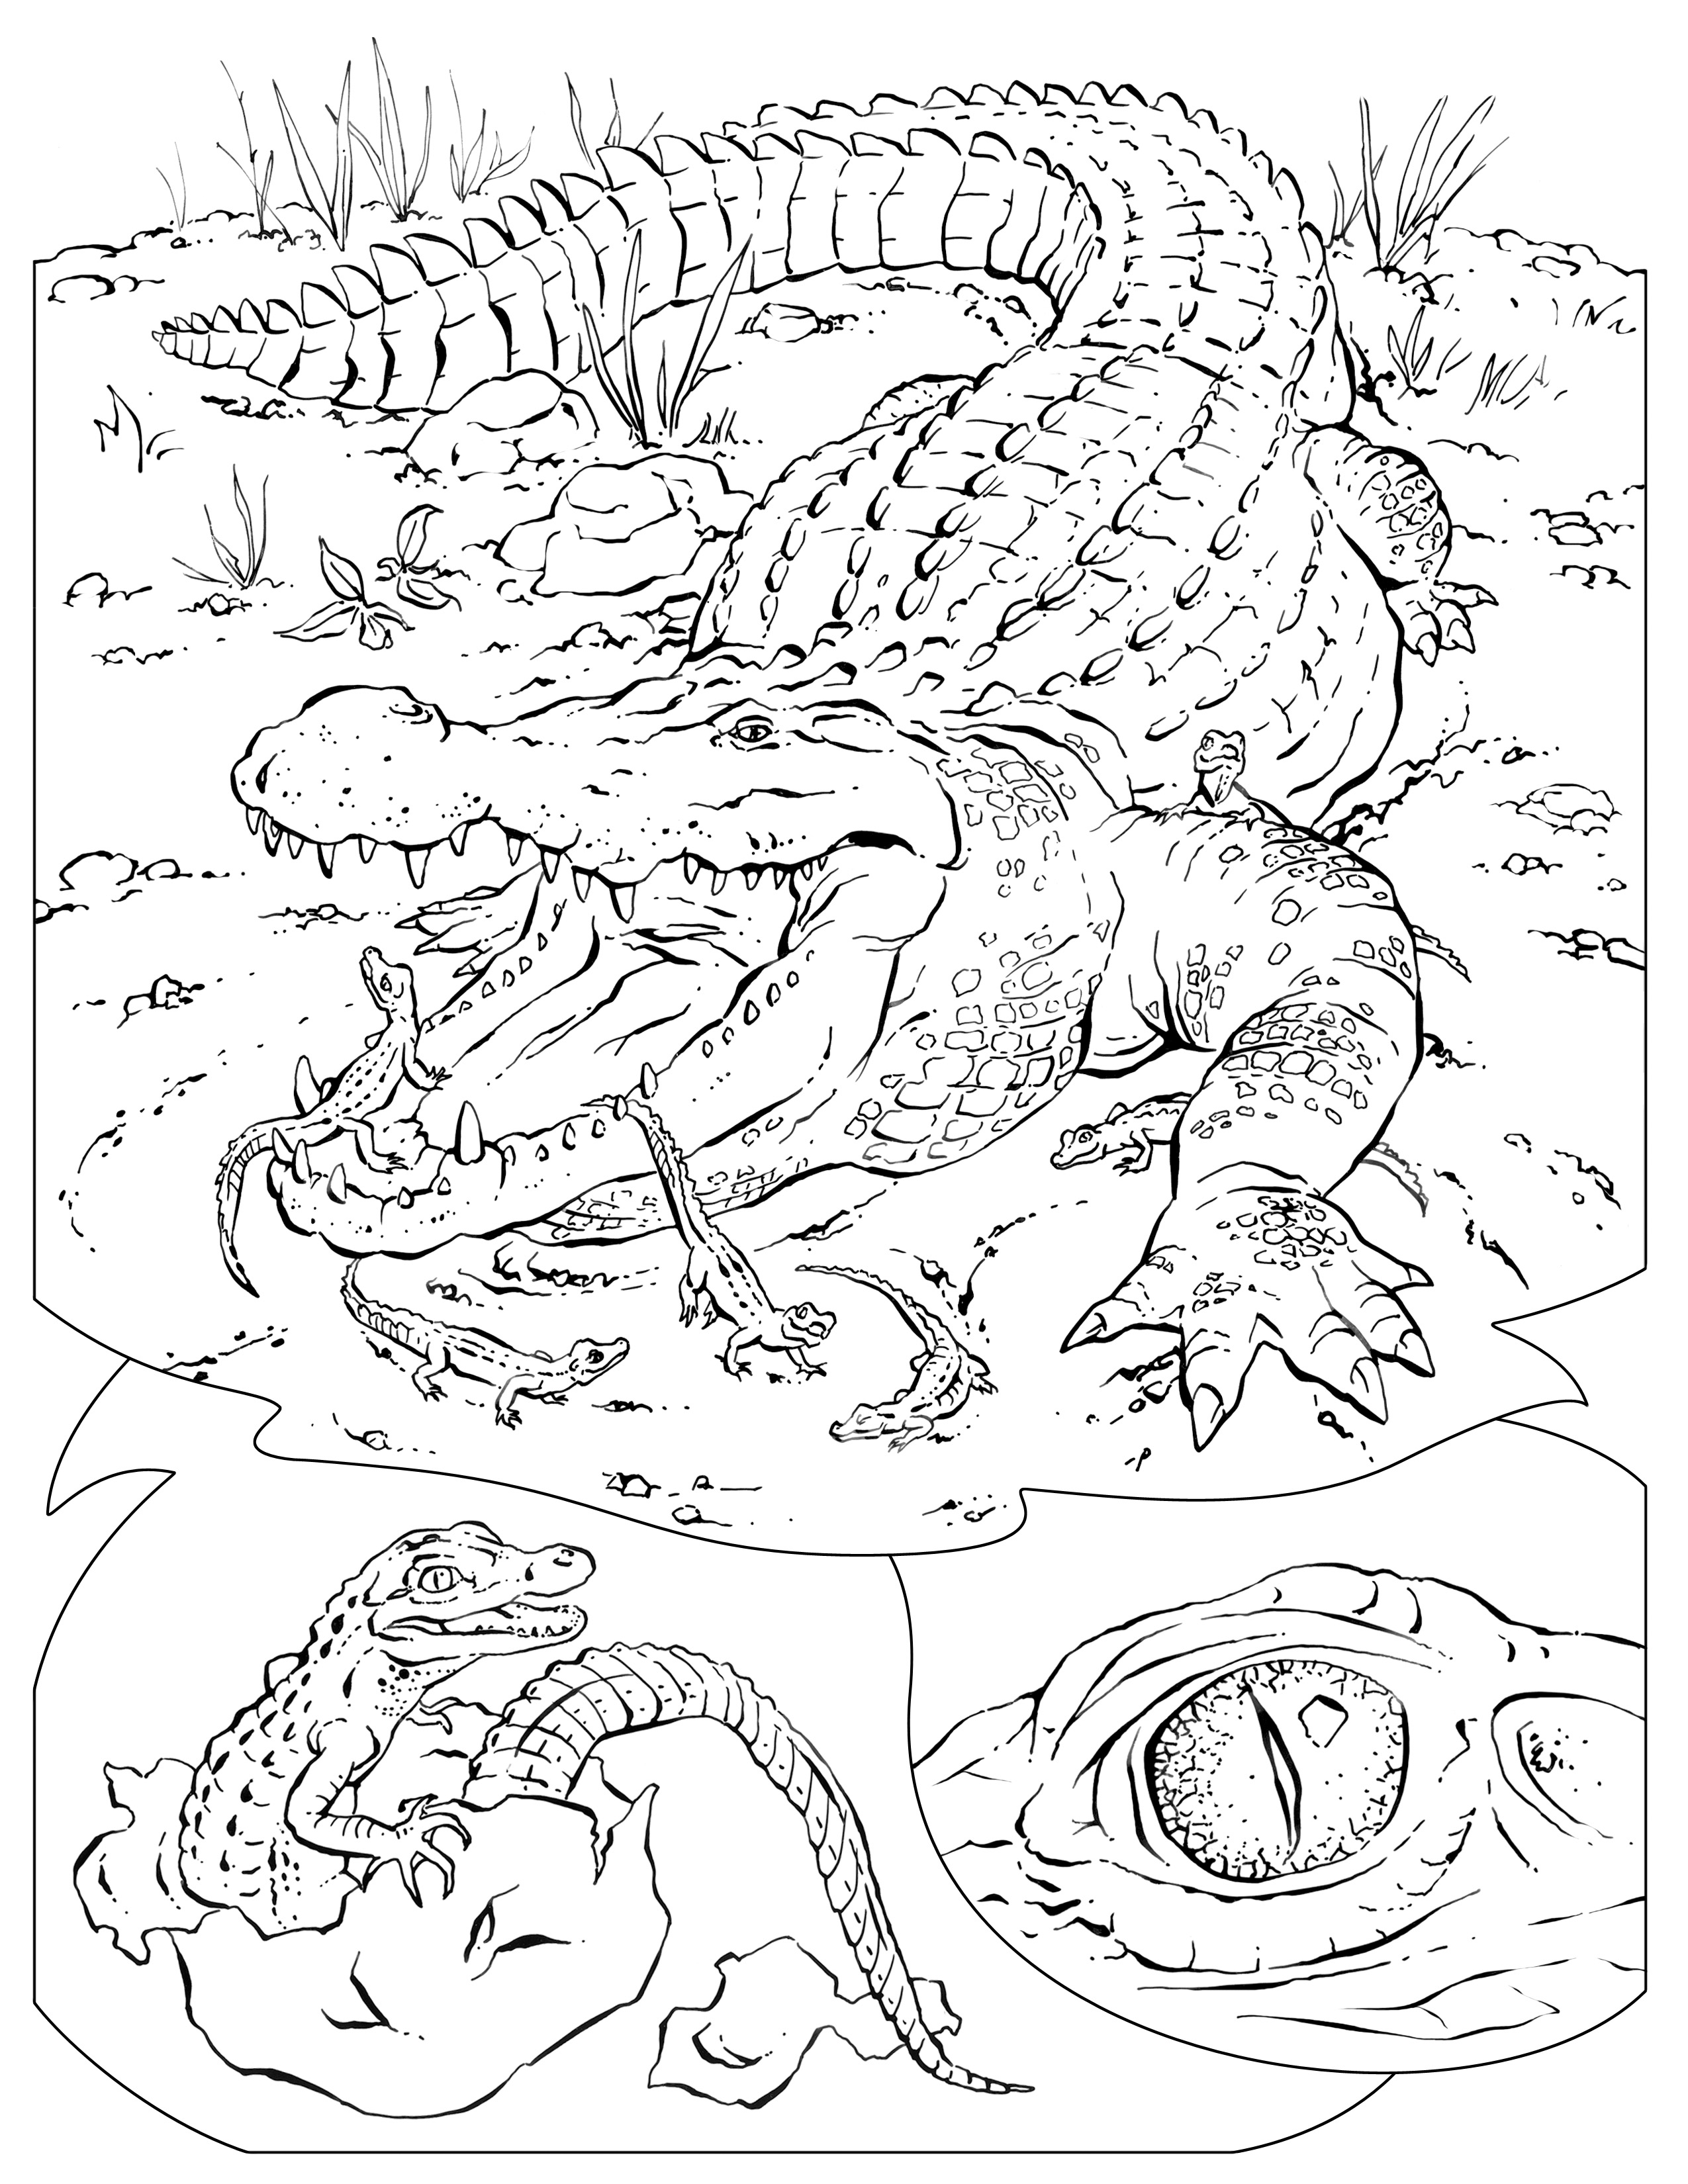 animal habitat coloring pages forest habitat drawing at getdrawings free download pages animal coloring habitat